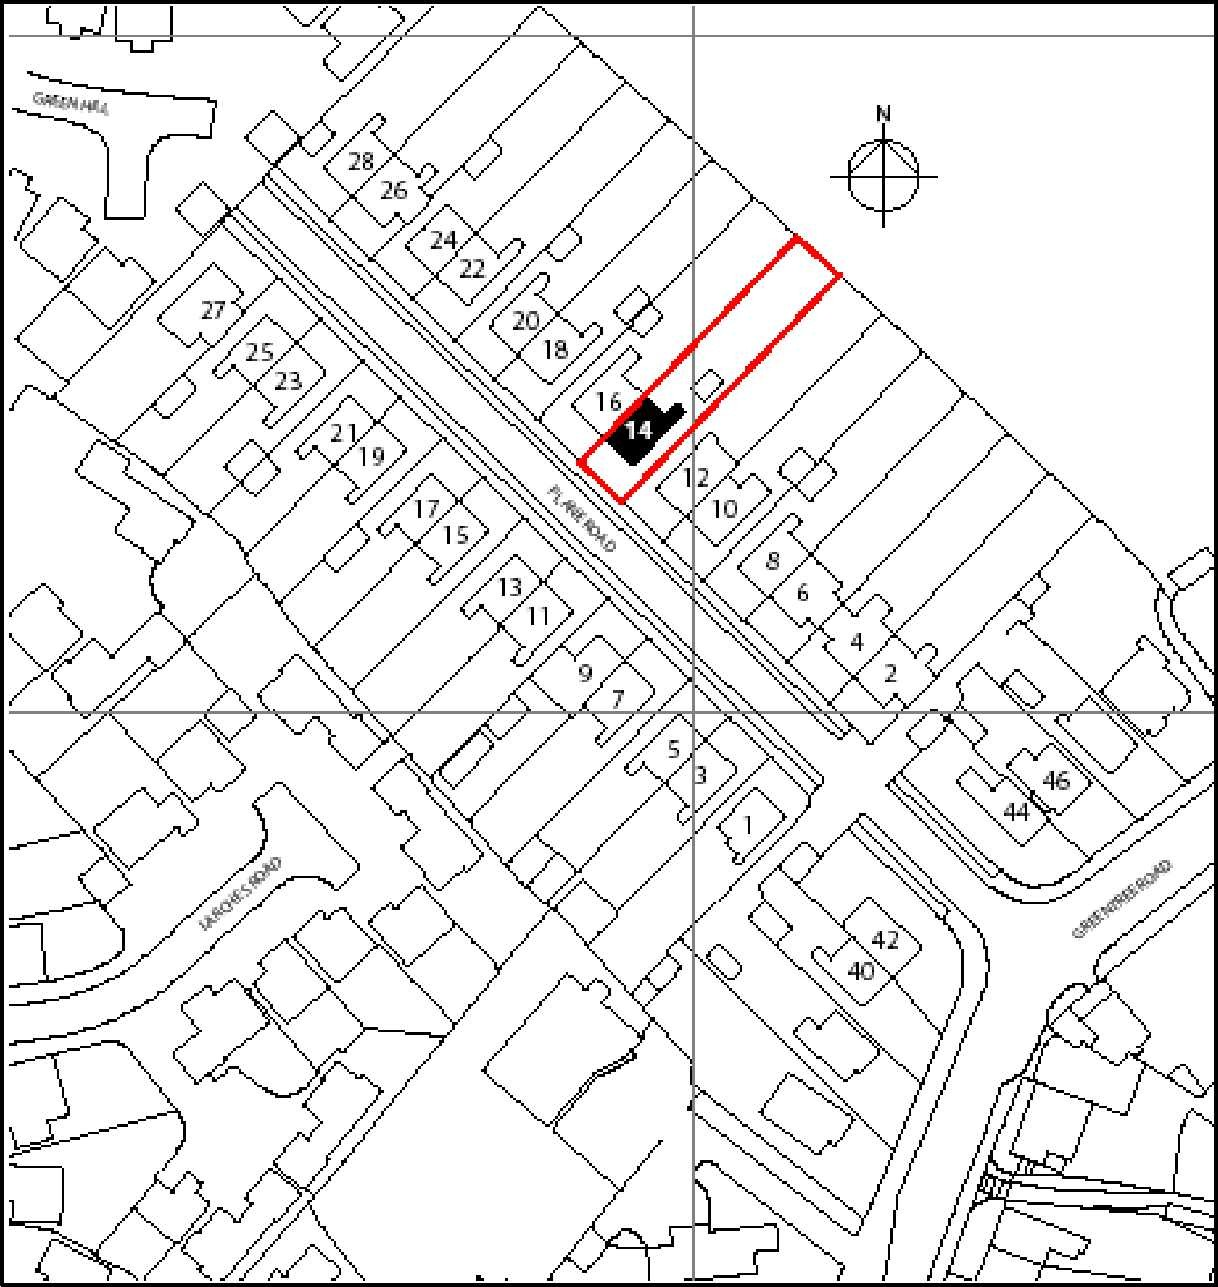 site location plan planning application guidance